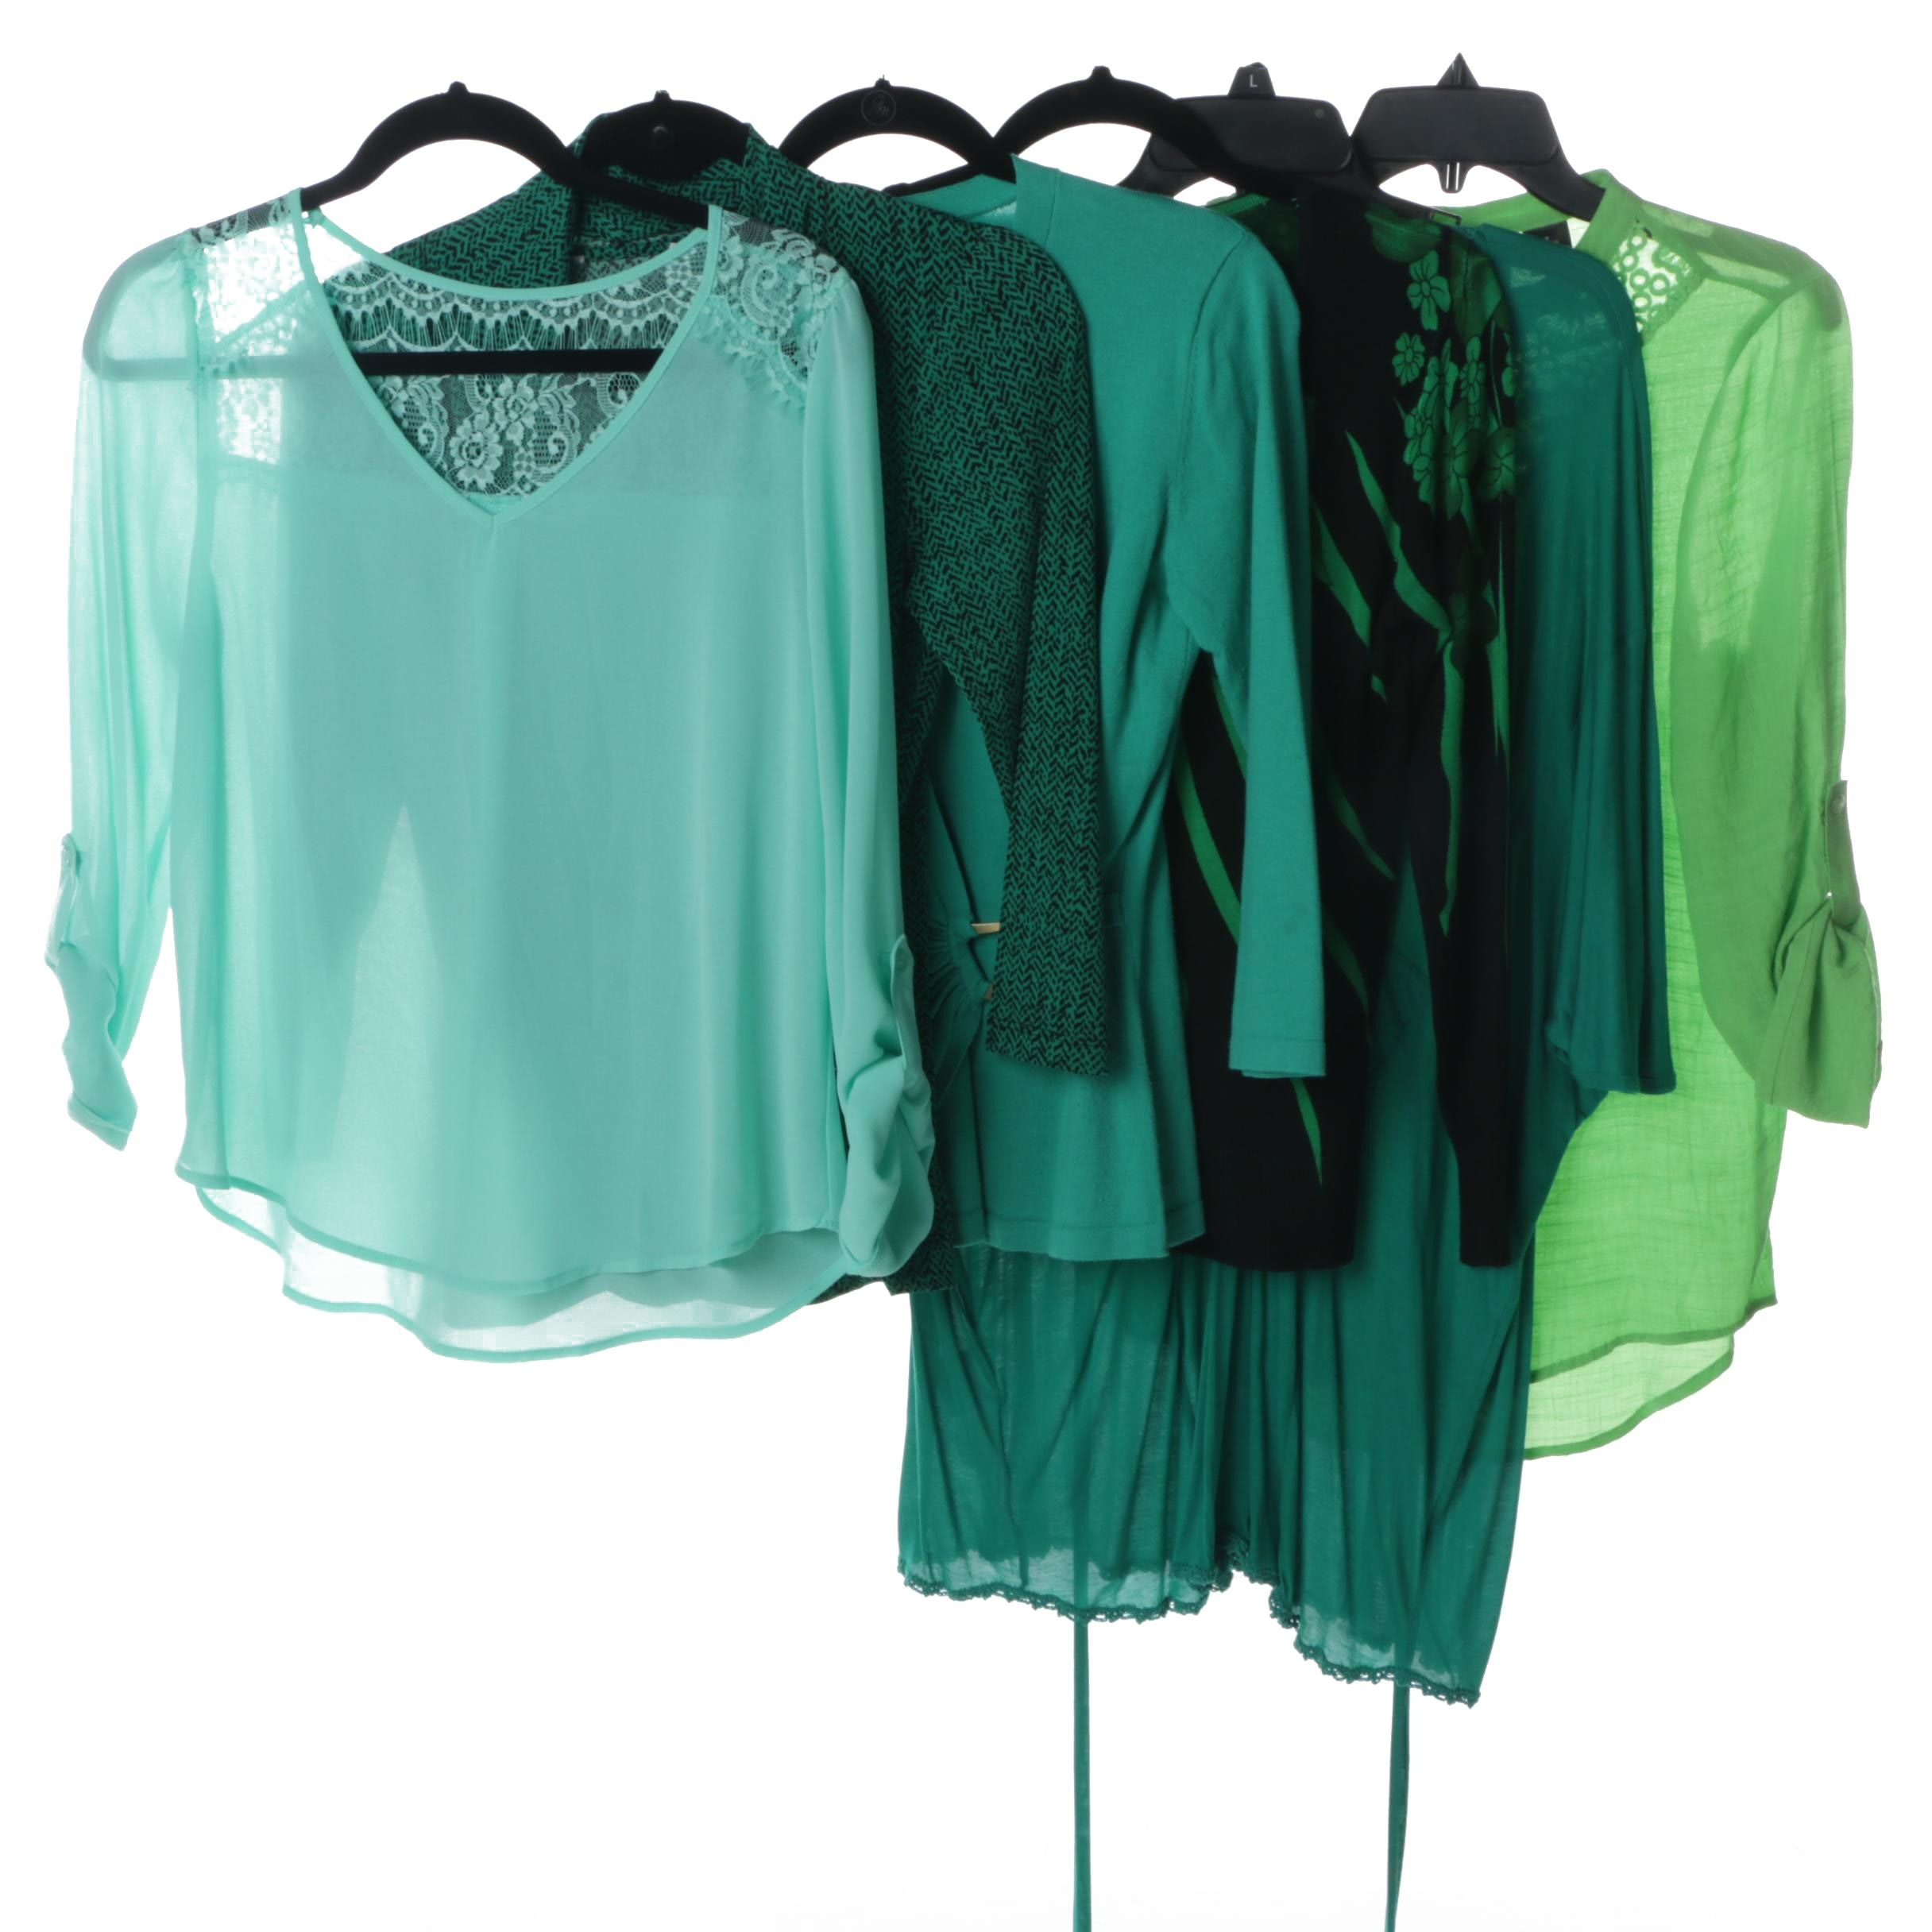 Women's Blue and Green Tone Tops Including BCBG Max Azria and Emma K